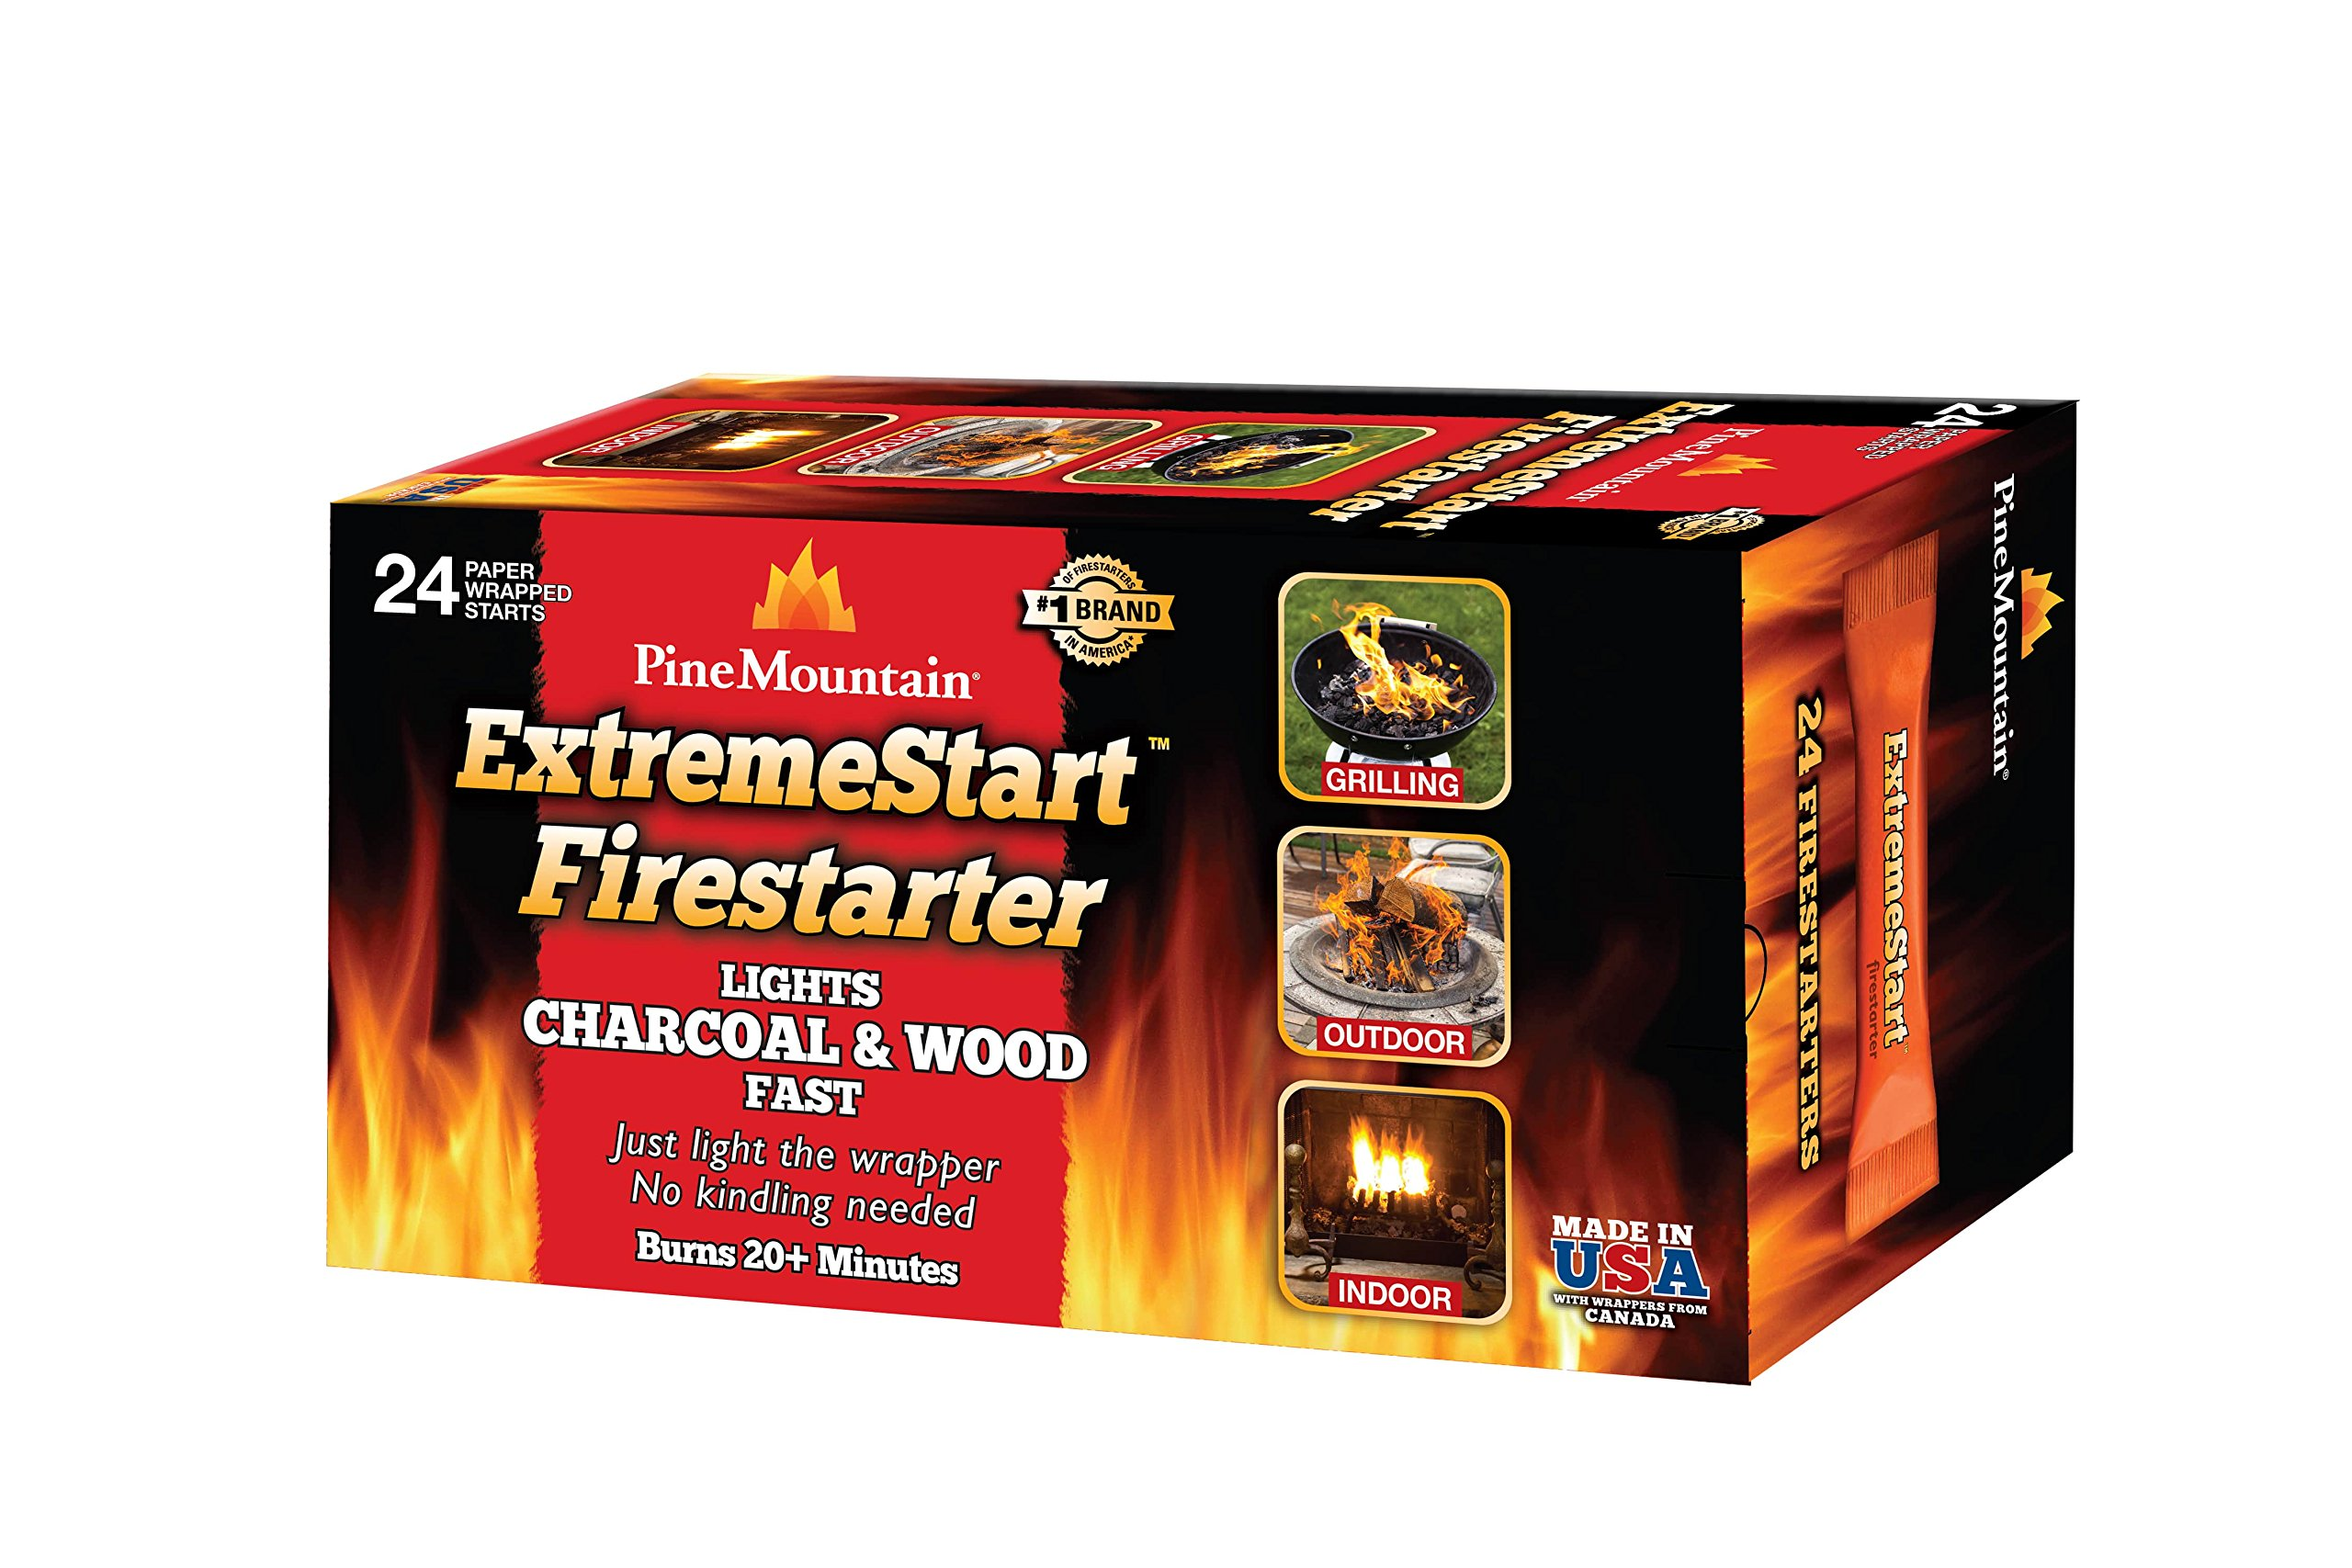 Pine Mountain ExtremeStart Wrapped Fire Starters, 24 Starts Firestarter Wood Fire Log for Campfire, Fireplace, Wood Stove, Fire Pit, Indoor & Outdoor Use by Pine Mountain